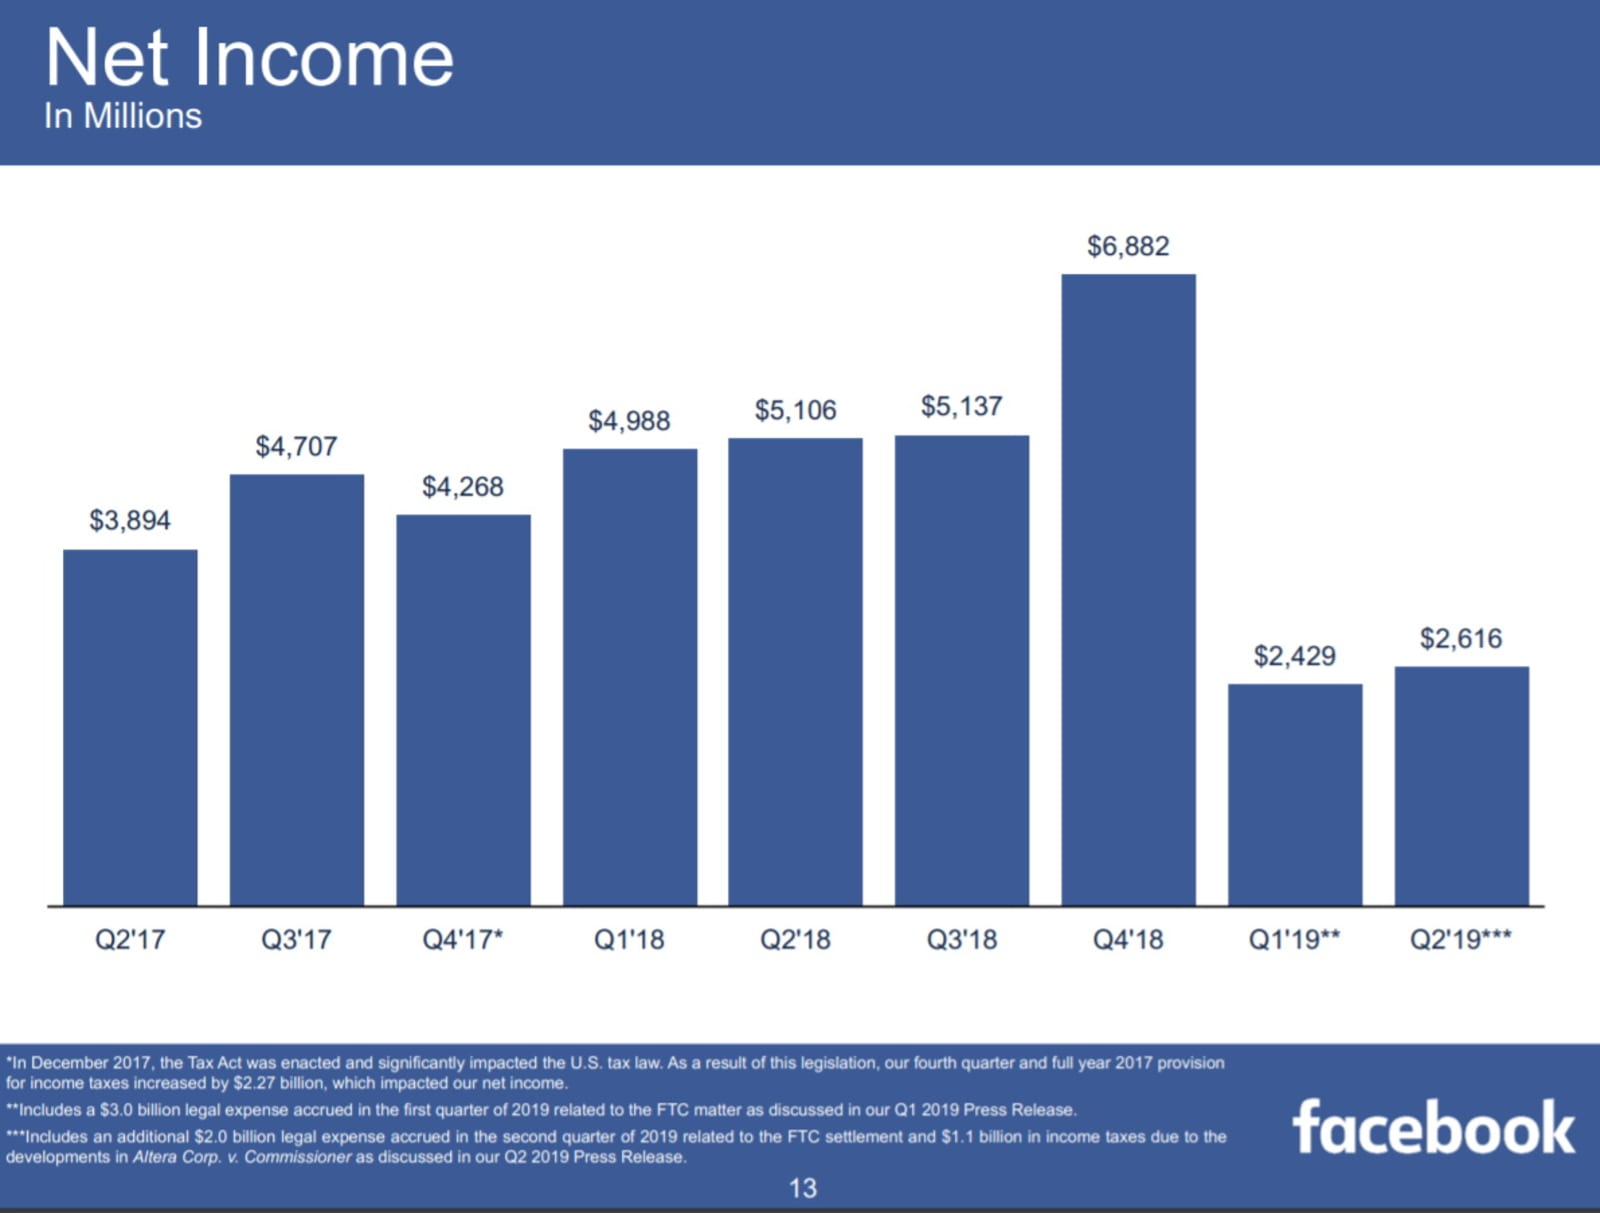 Facebook net income